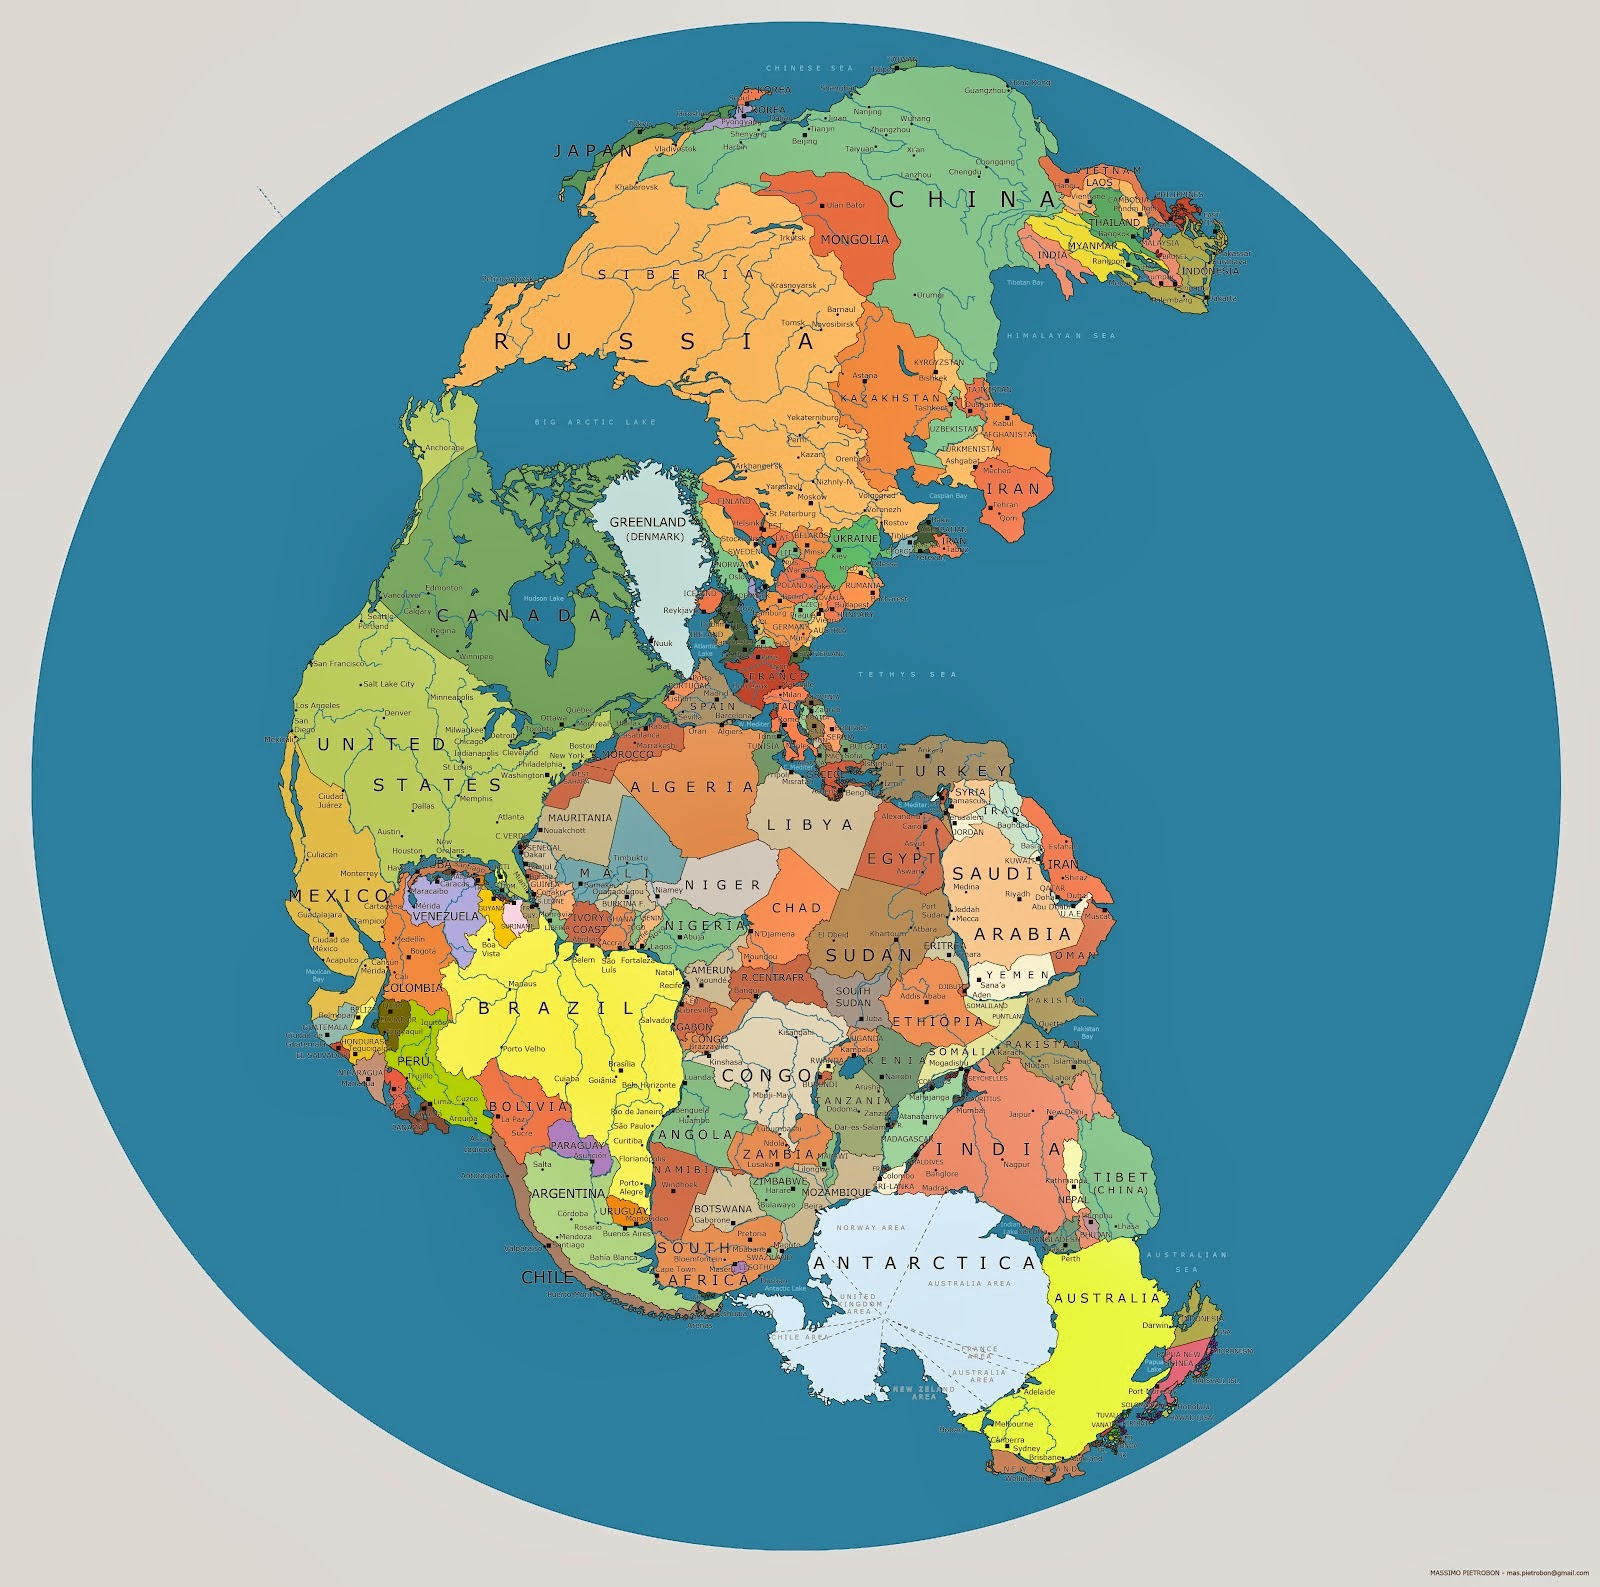 Ms D S Earth Science Class Continental Drift Theory